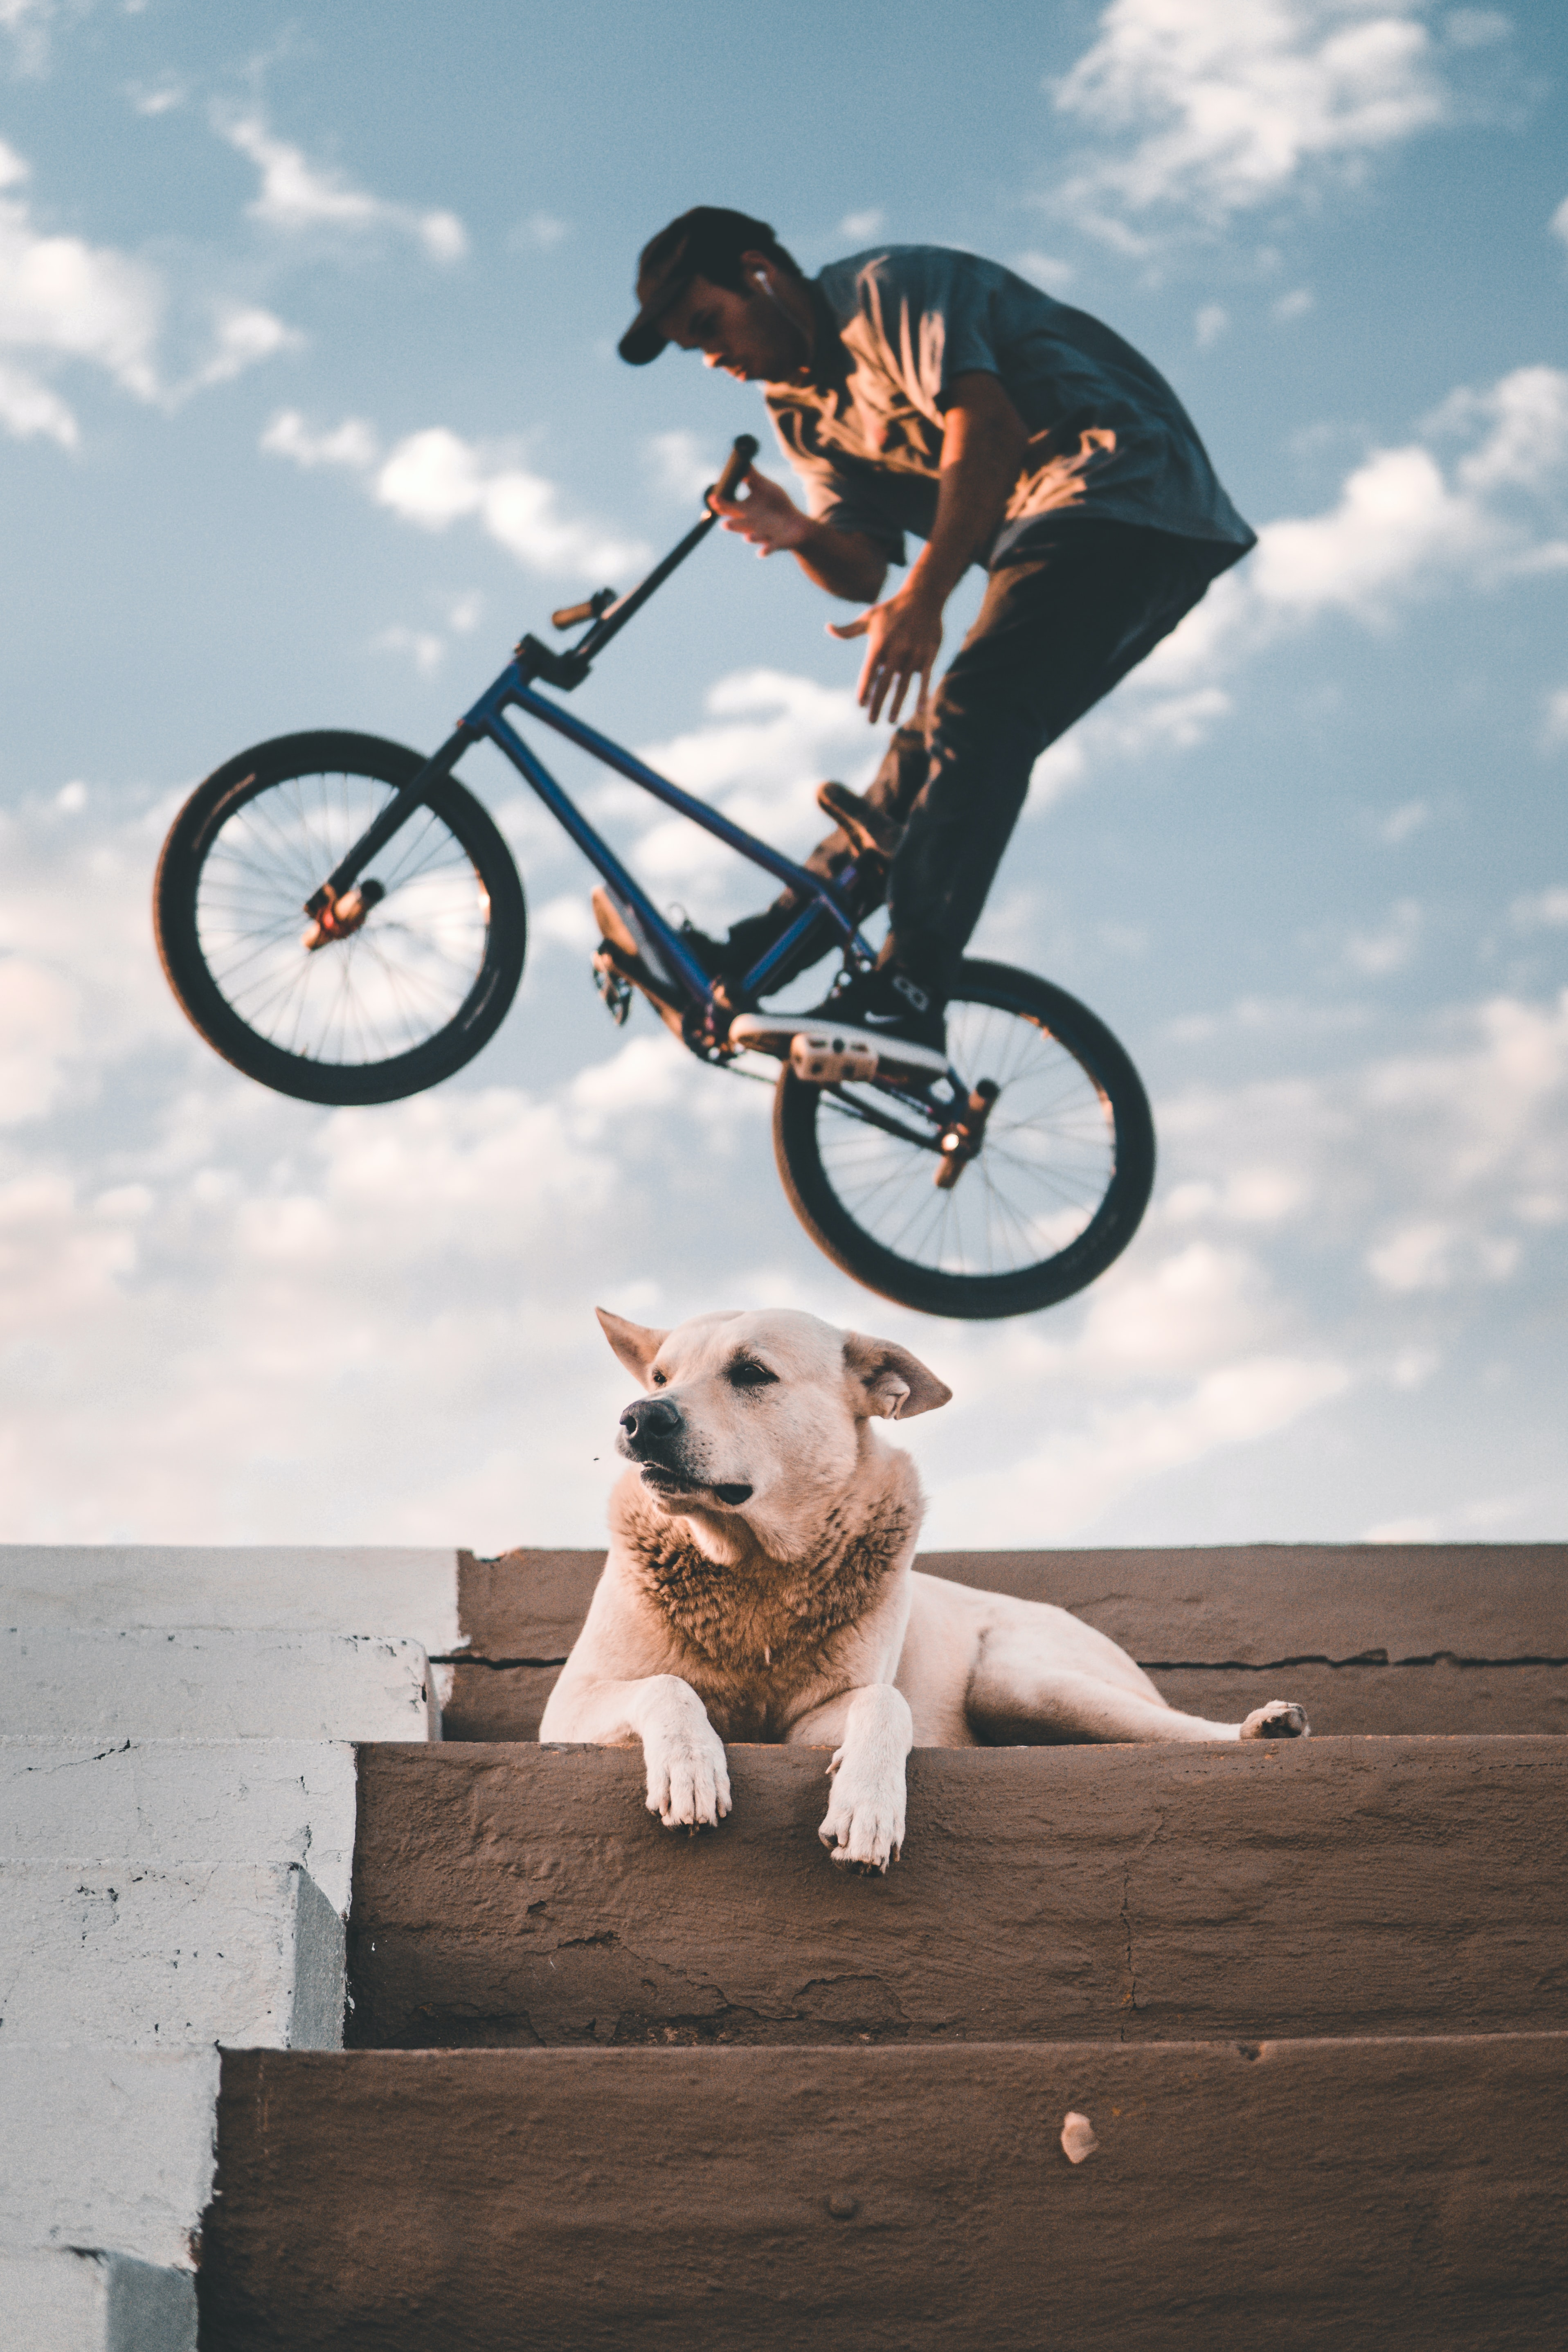 man doing BMX tricks near white dog